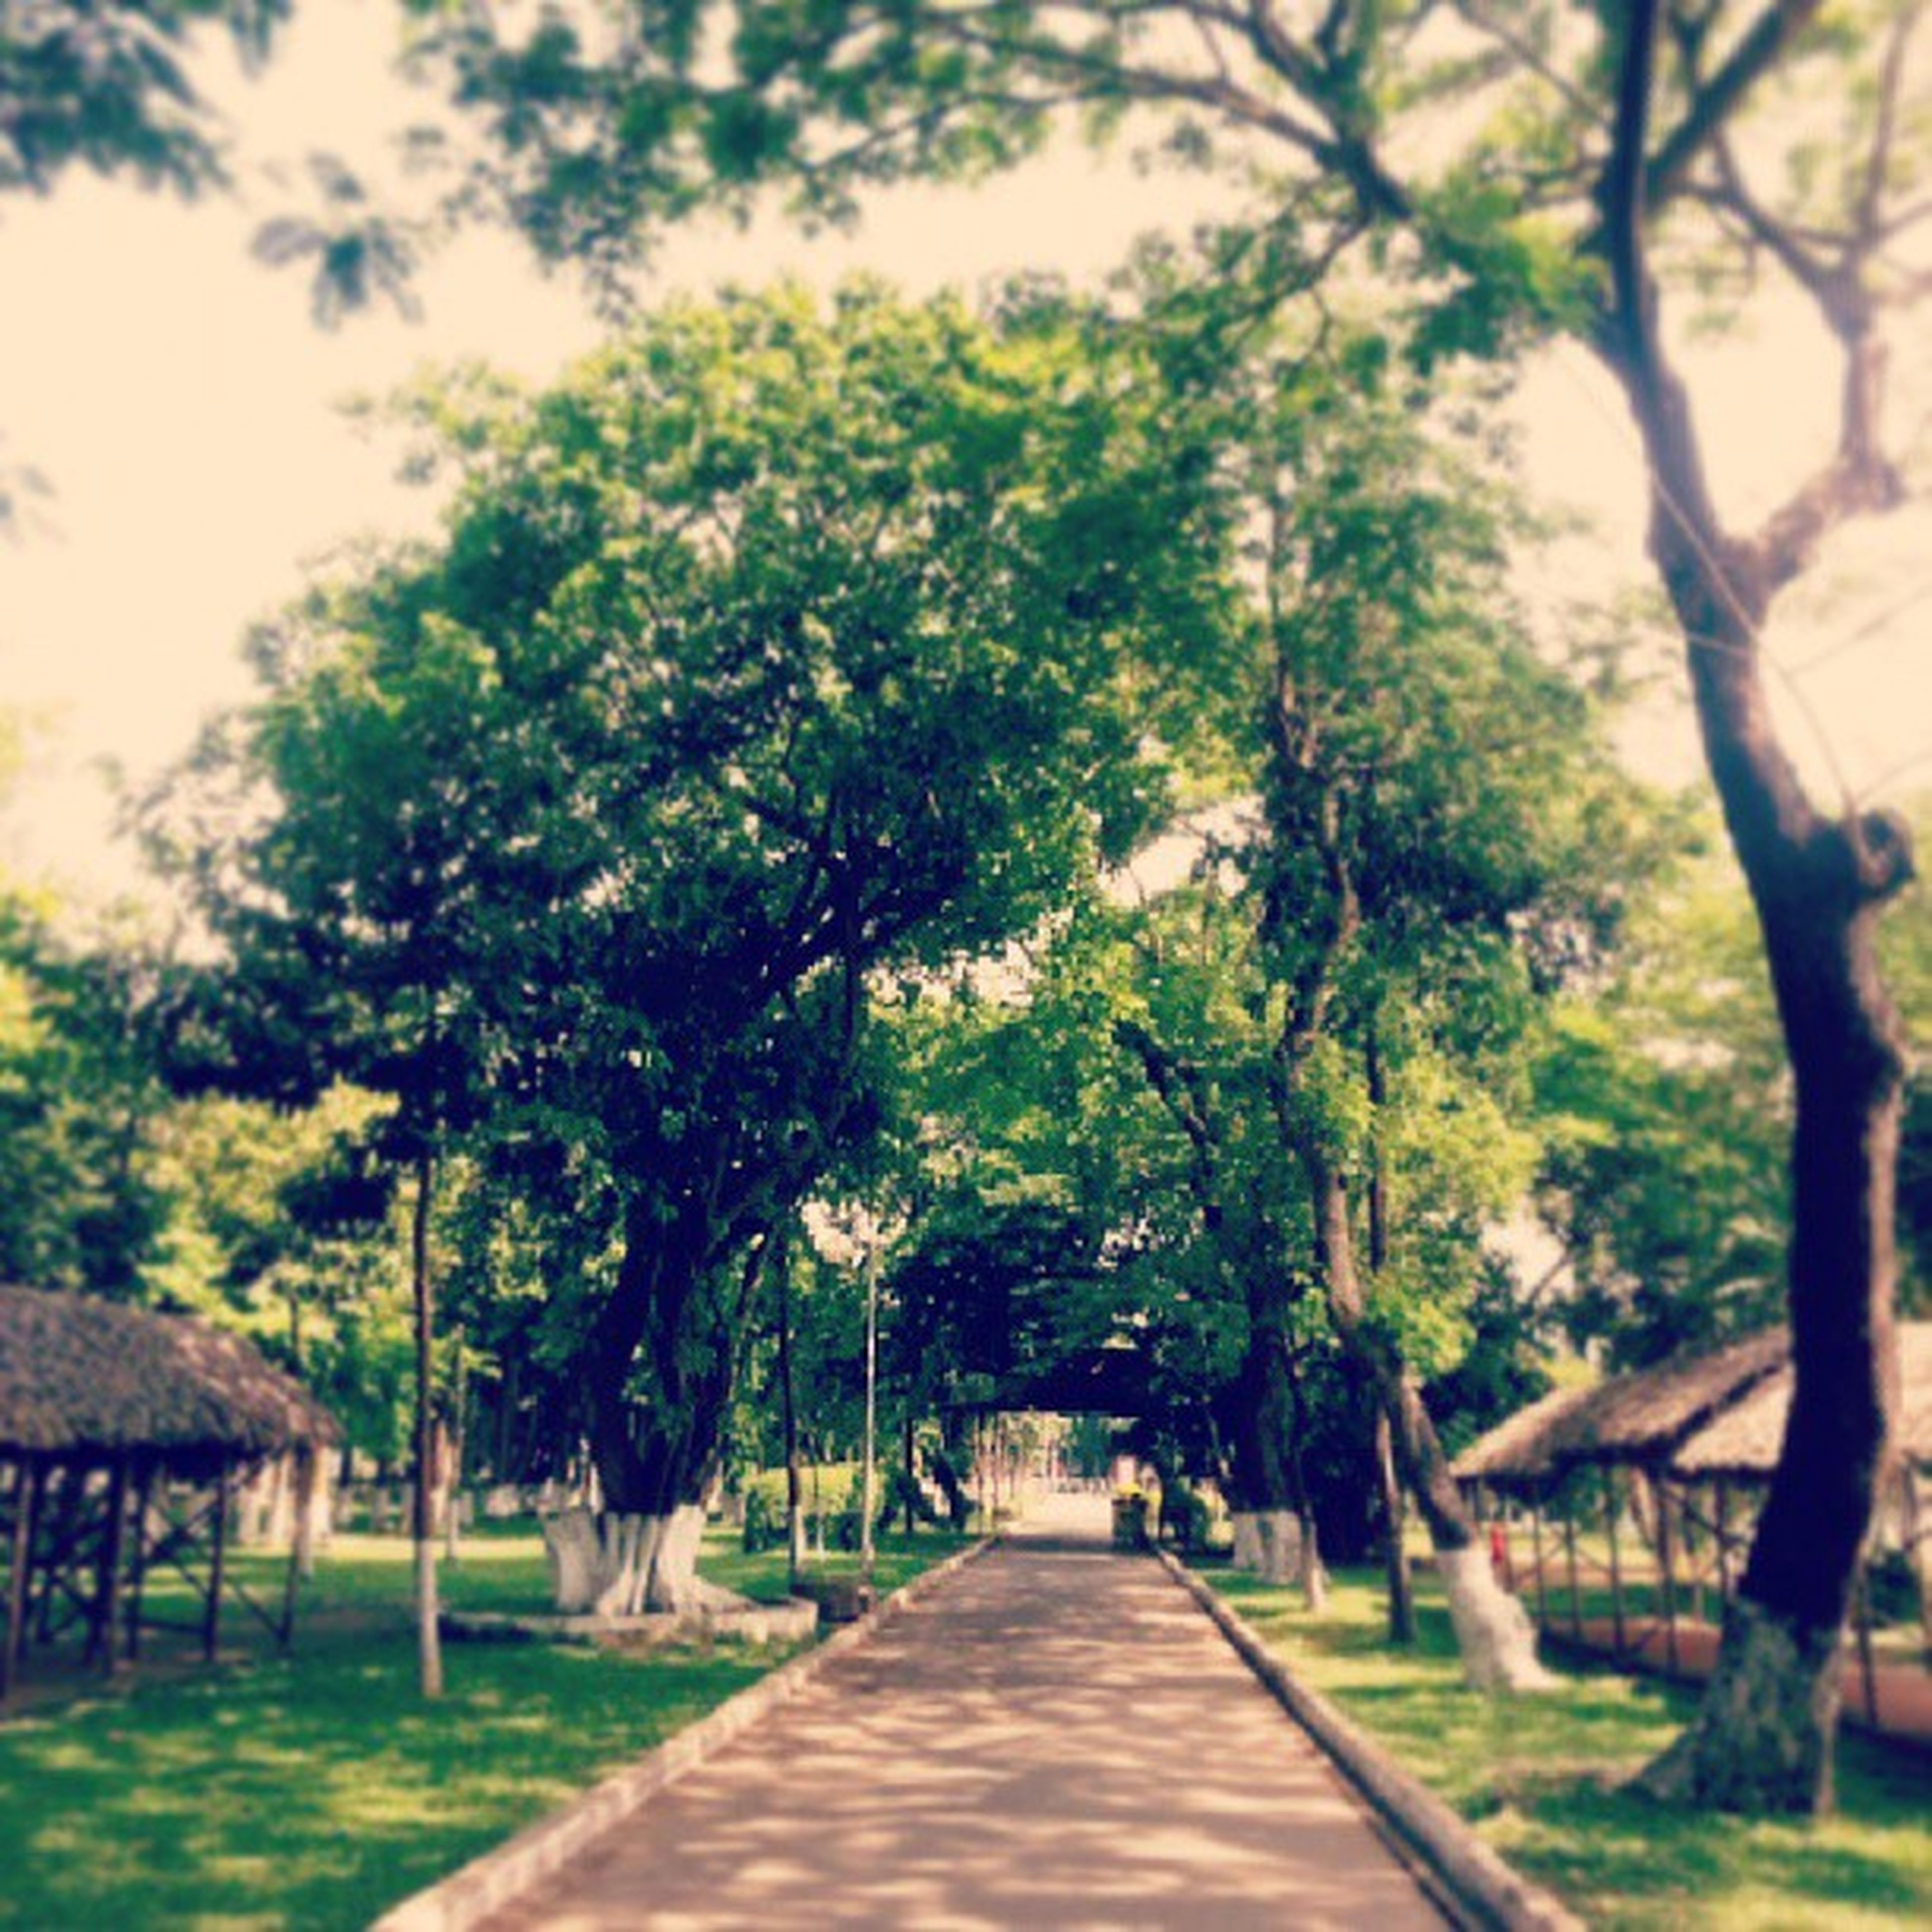 the way forward, tree, diminishing perspective, vanishing point, treelined, footpath, walkway, growth, tranquility, long, empty, nature, narrow, pathway, park - man made space, branch, tree trunk, tranquil scene, road, day